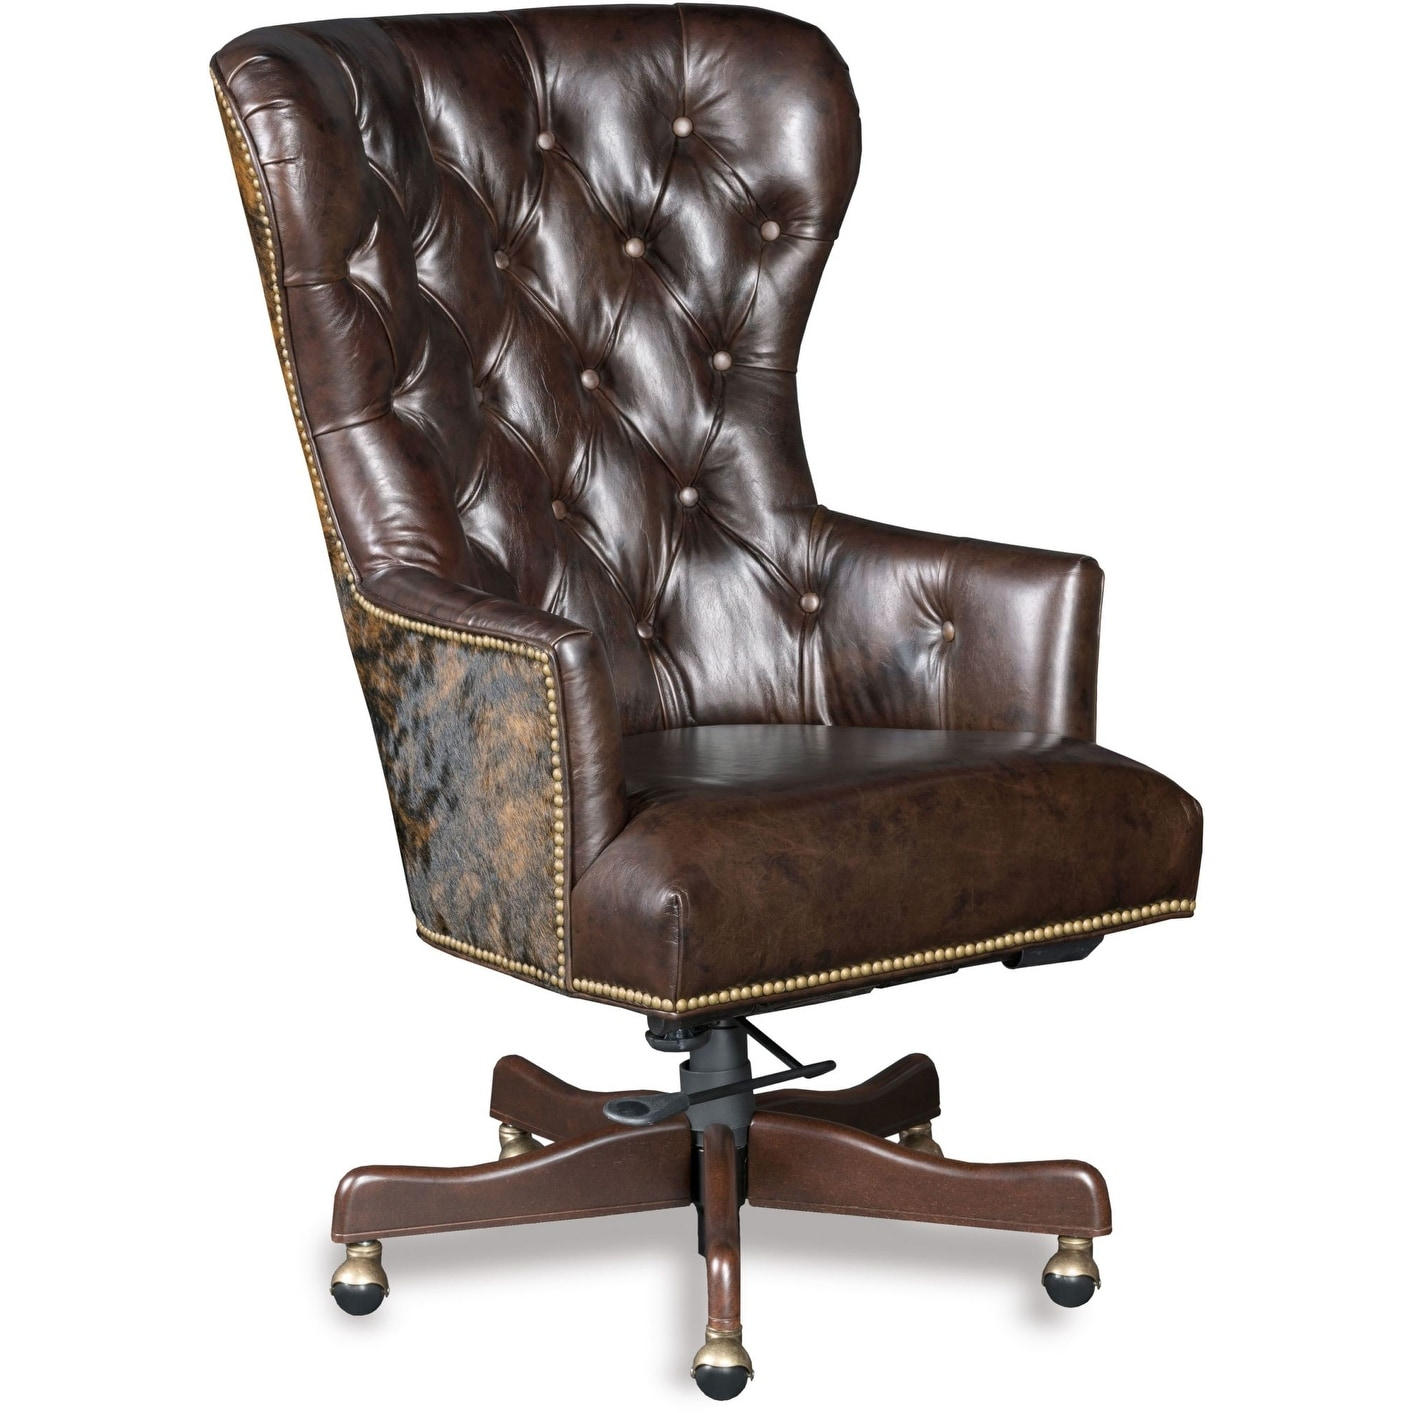 Hooker Furniture Ec448 087 Adjustable Height Leather Office Chair From The Katherine Collection Kingston Eden With Cowhide